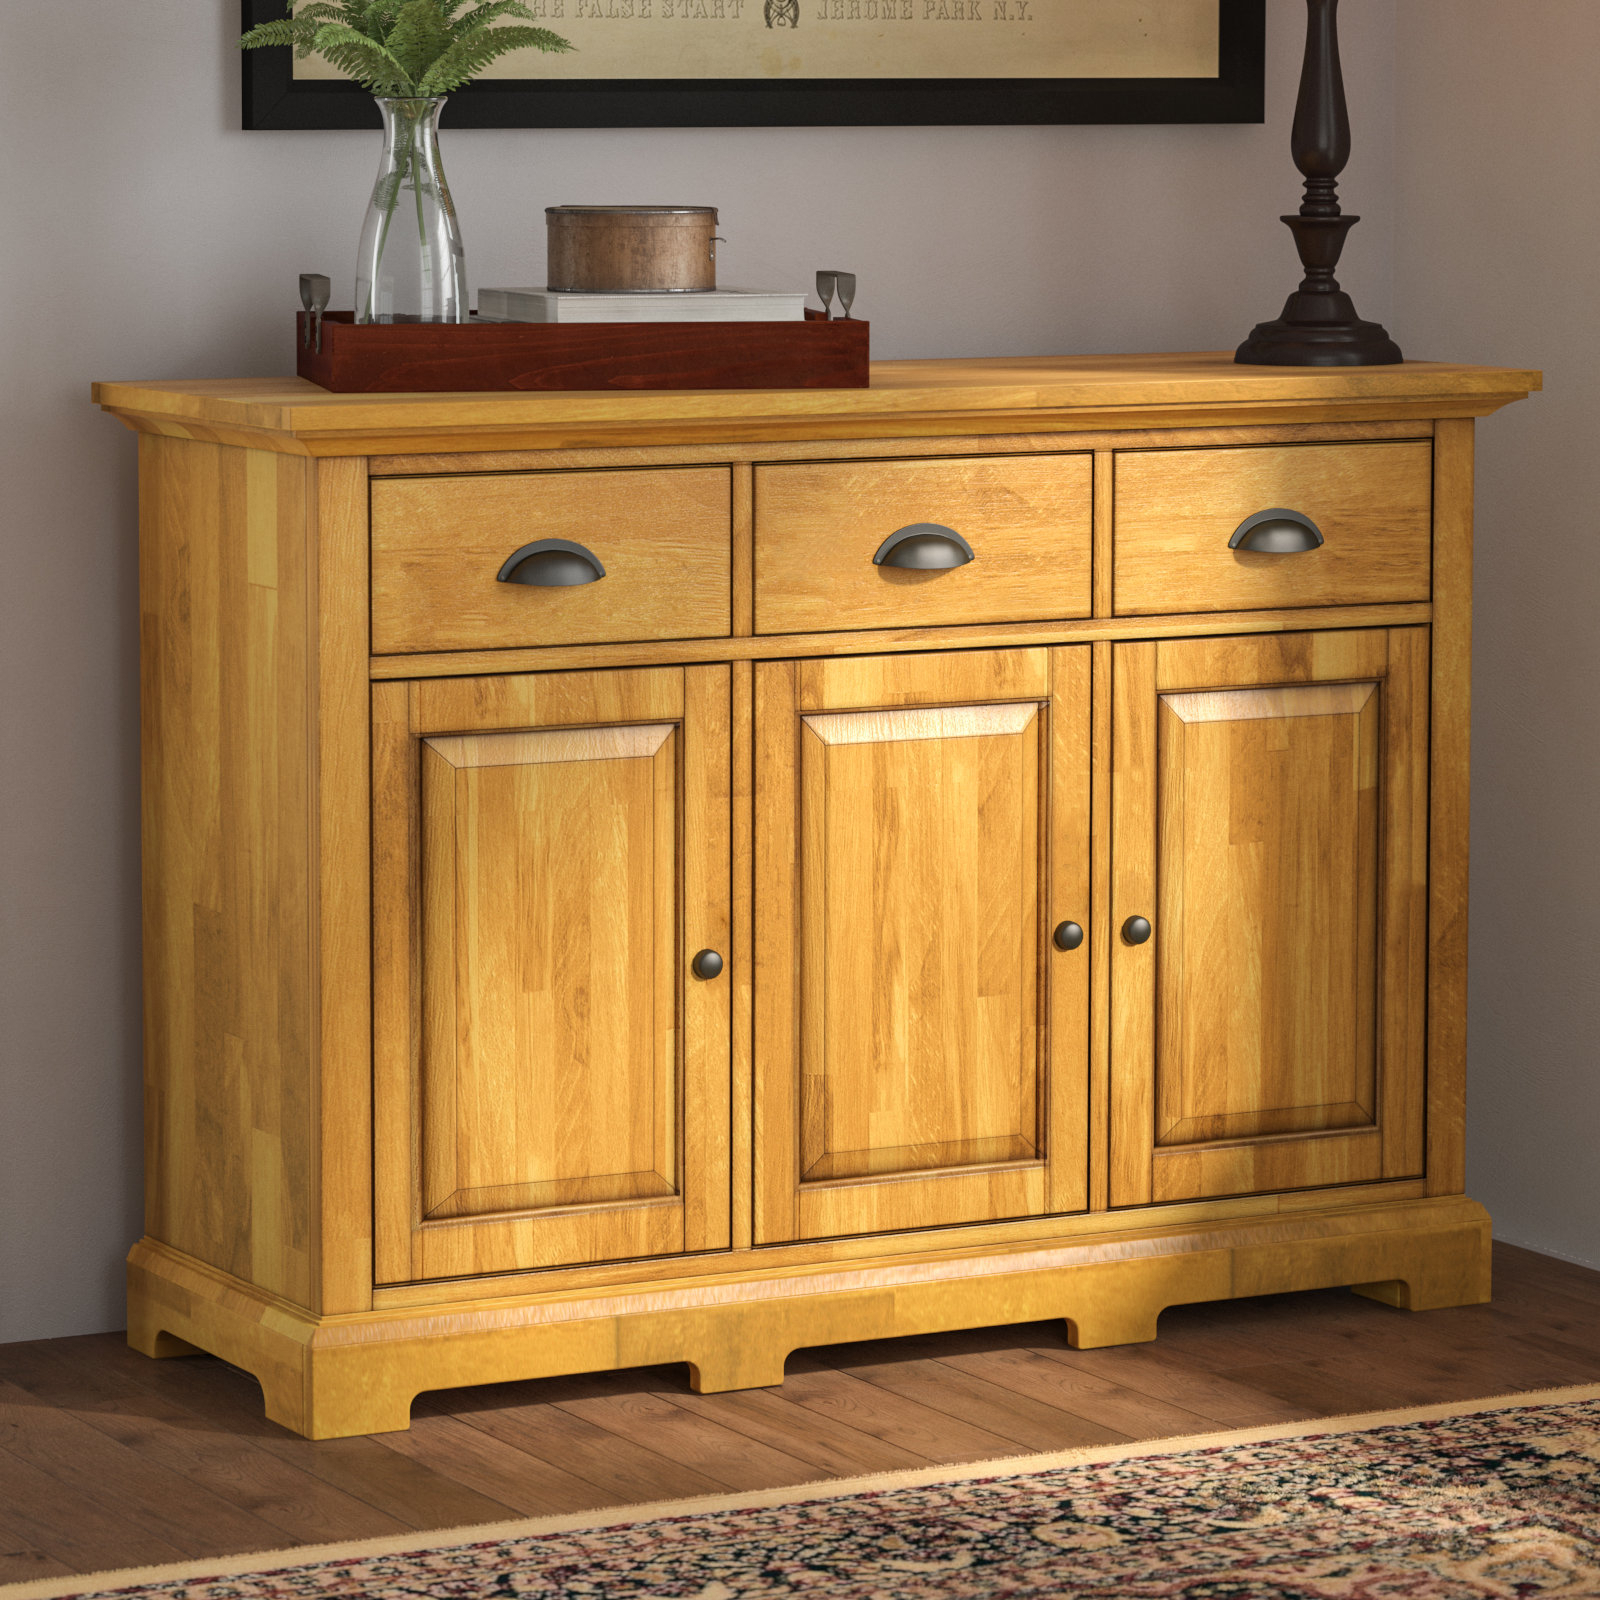 Farmhouse & Rustic Three Posts Sideboards & Buffets | Birch Lane in Stillwater Sideboards (Image 8 of 30)